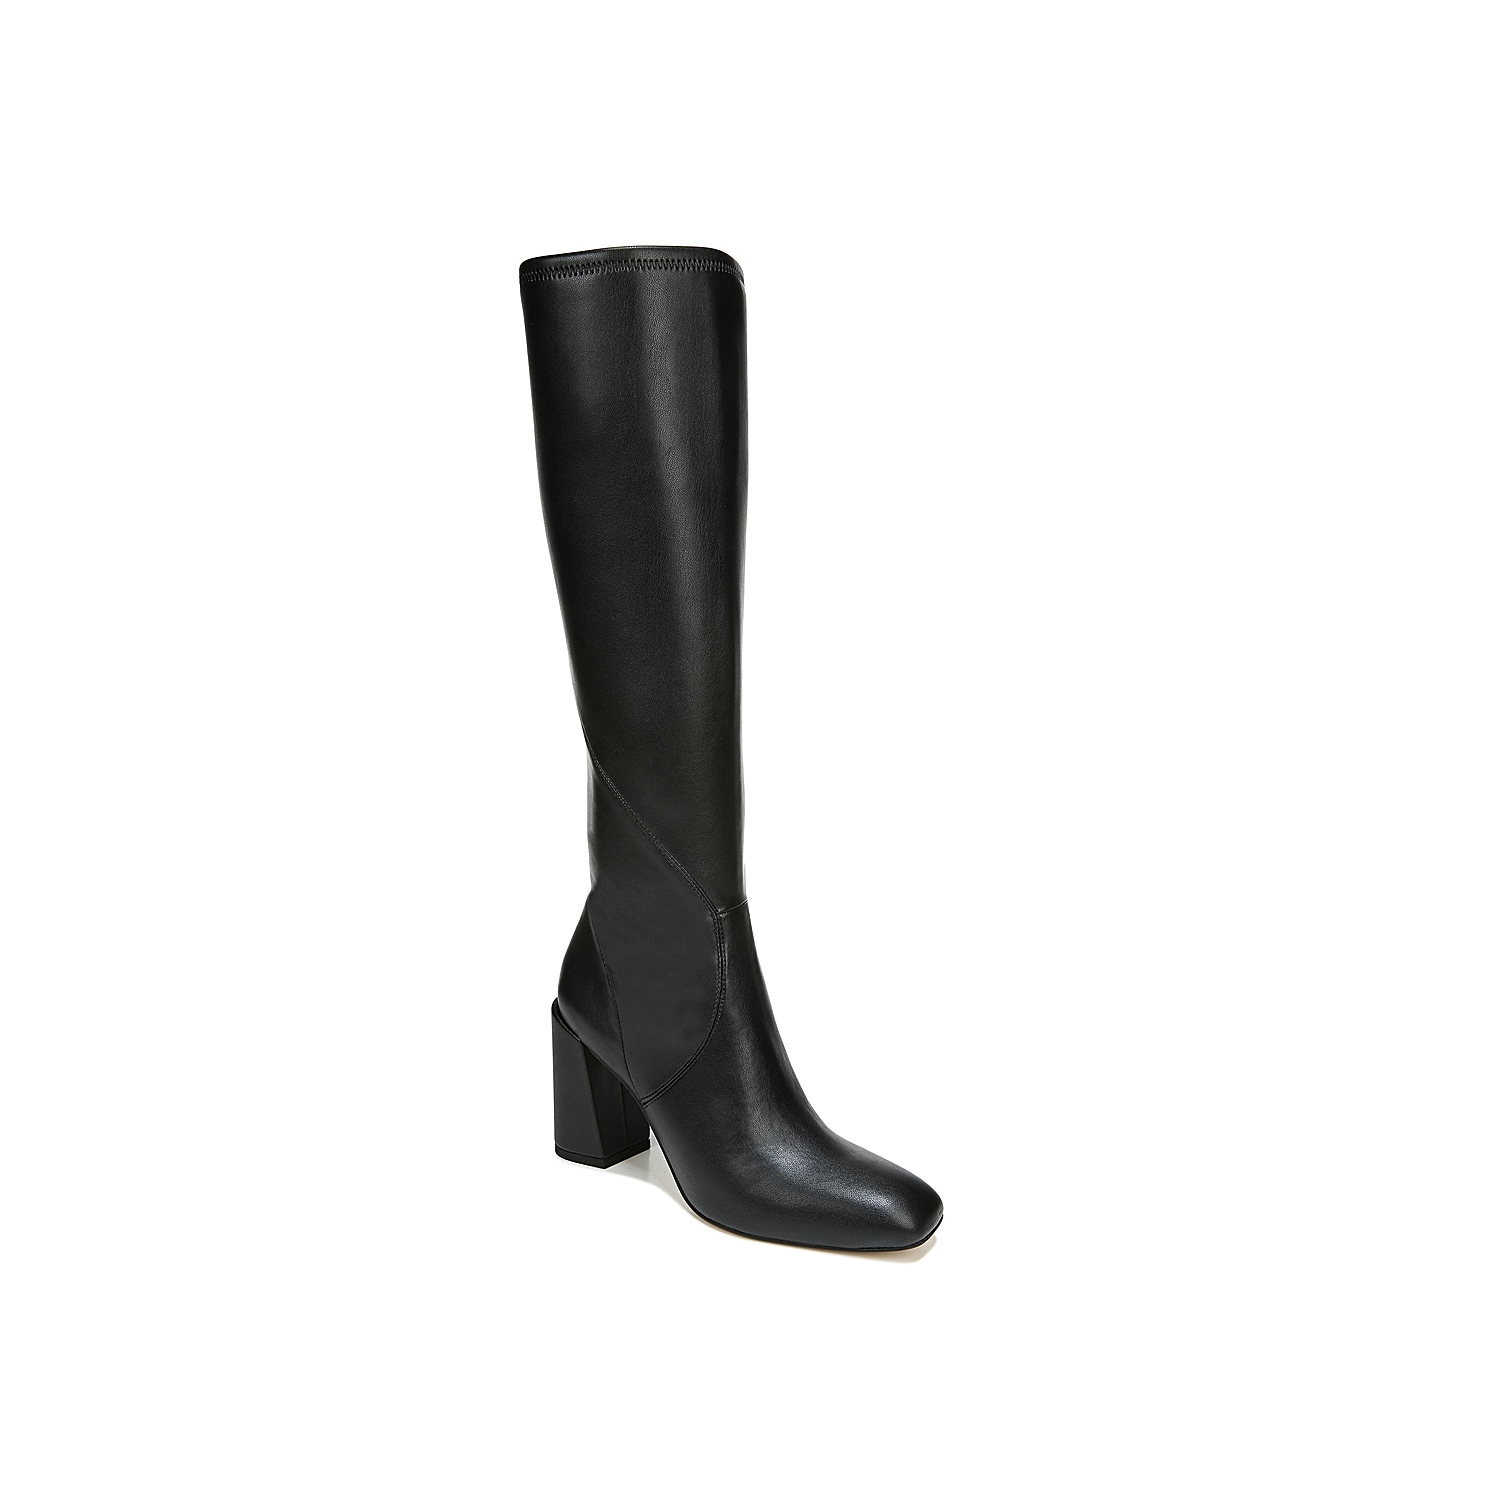 A streamlined silhouette with notes of modern styling define the Gardenia architectural tall boot from Franco Sarto. Built-in stretch at the topline provides a comfortable, custom fit. The structured square toe and slanted block heel create modern angles.Click here for Boot Measuring Guide.